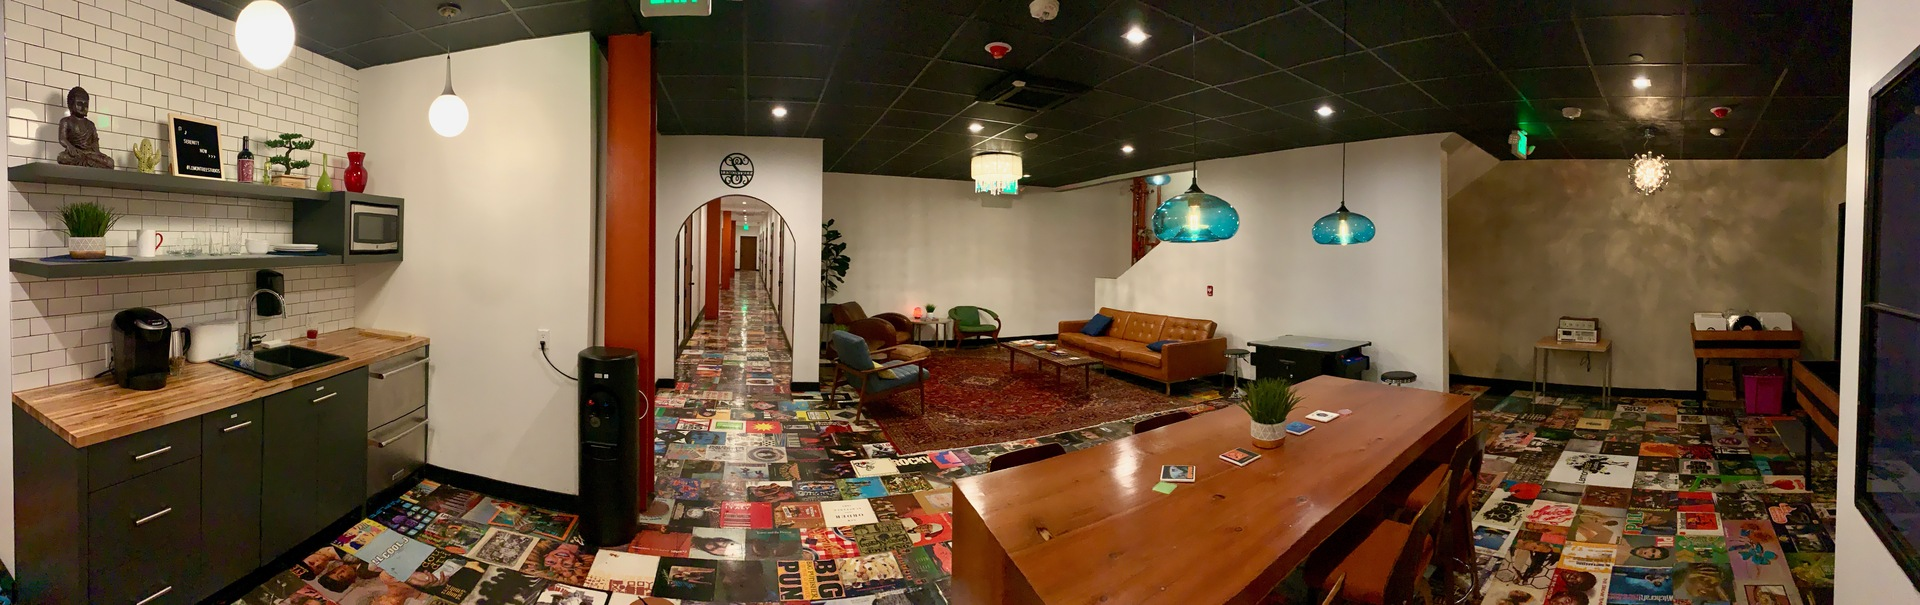 A panoramic view of the recording studio lounge.  LemonTree Studios installed QuietRocks 545 Multi-layer gypsum panels.  They are engineered to provide maximum sound attenuation across a broad frequency range.